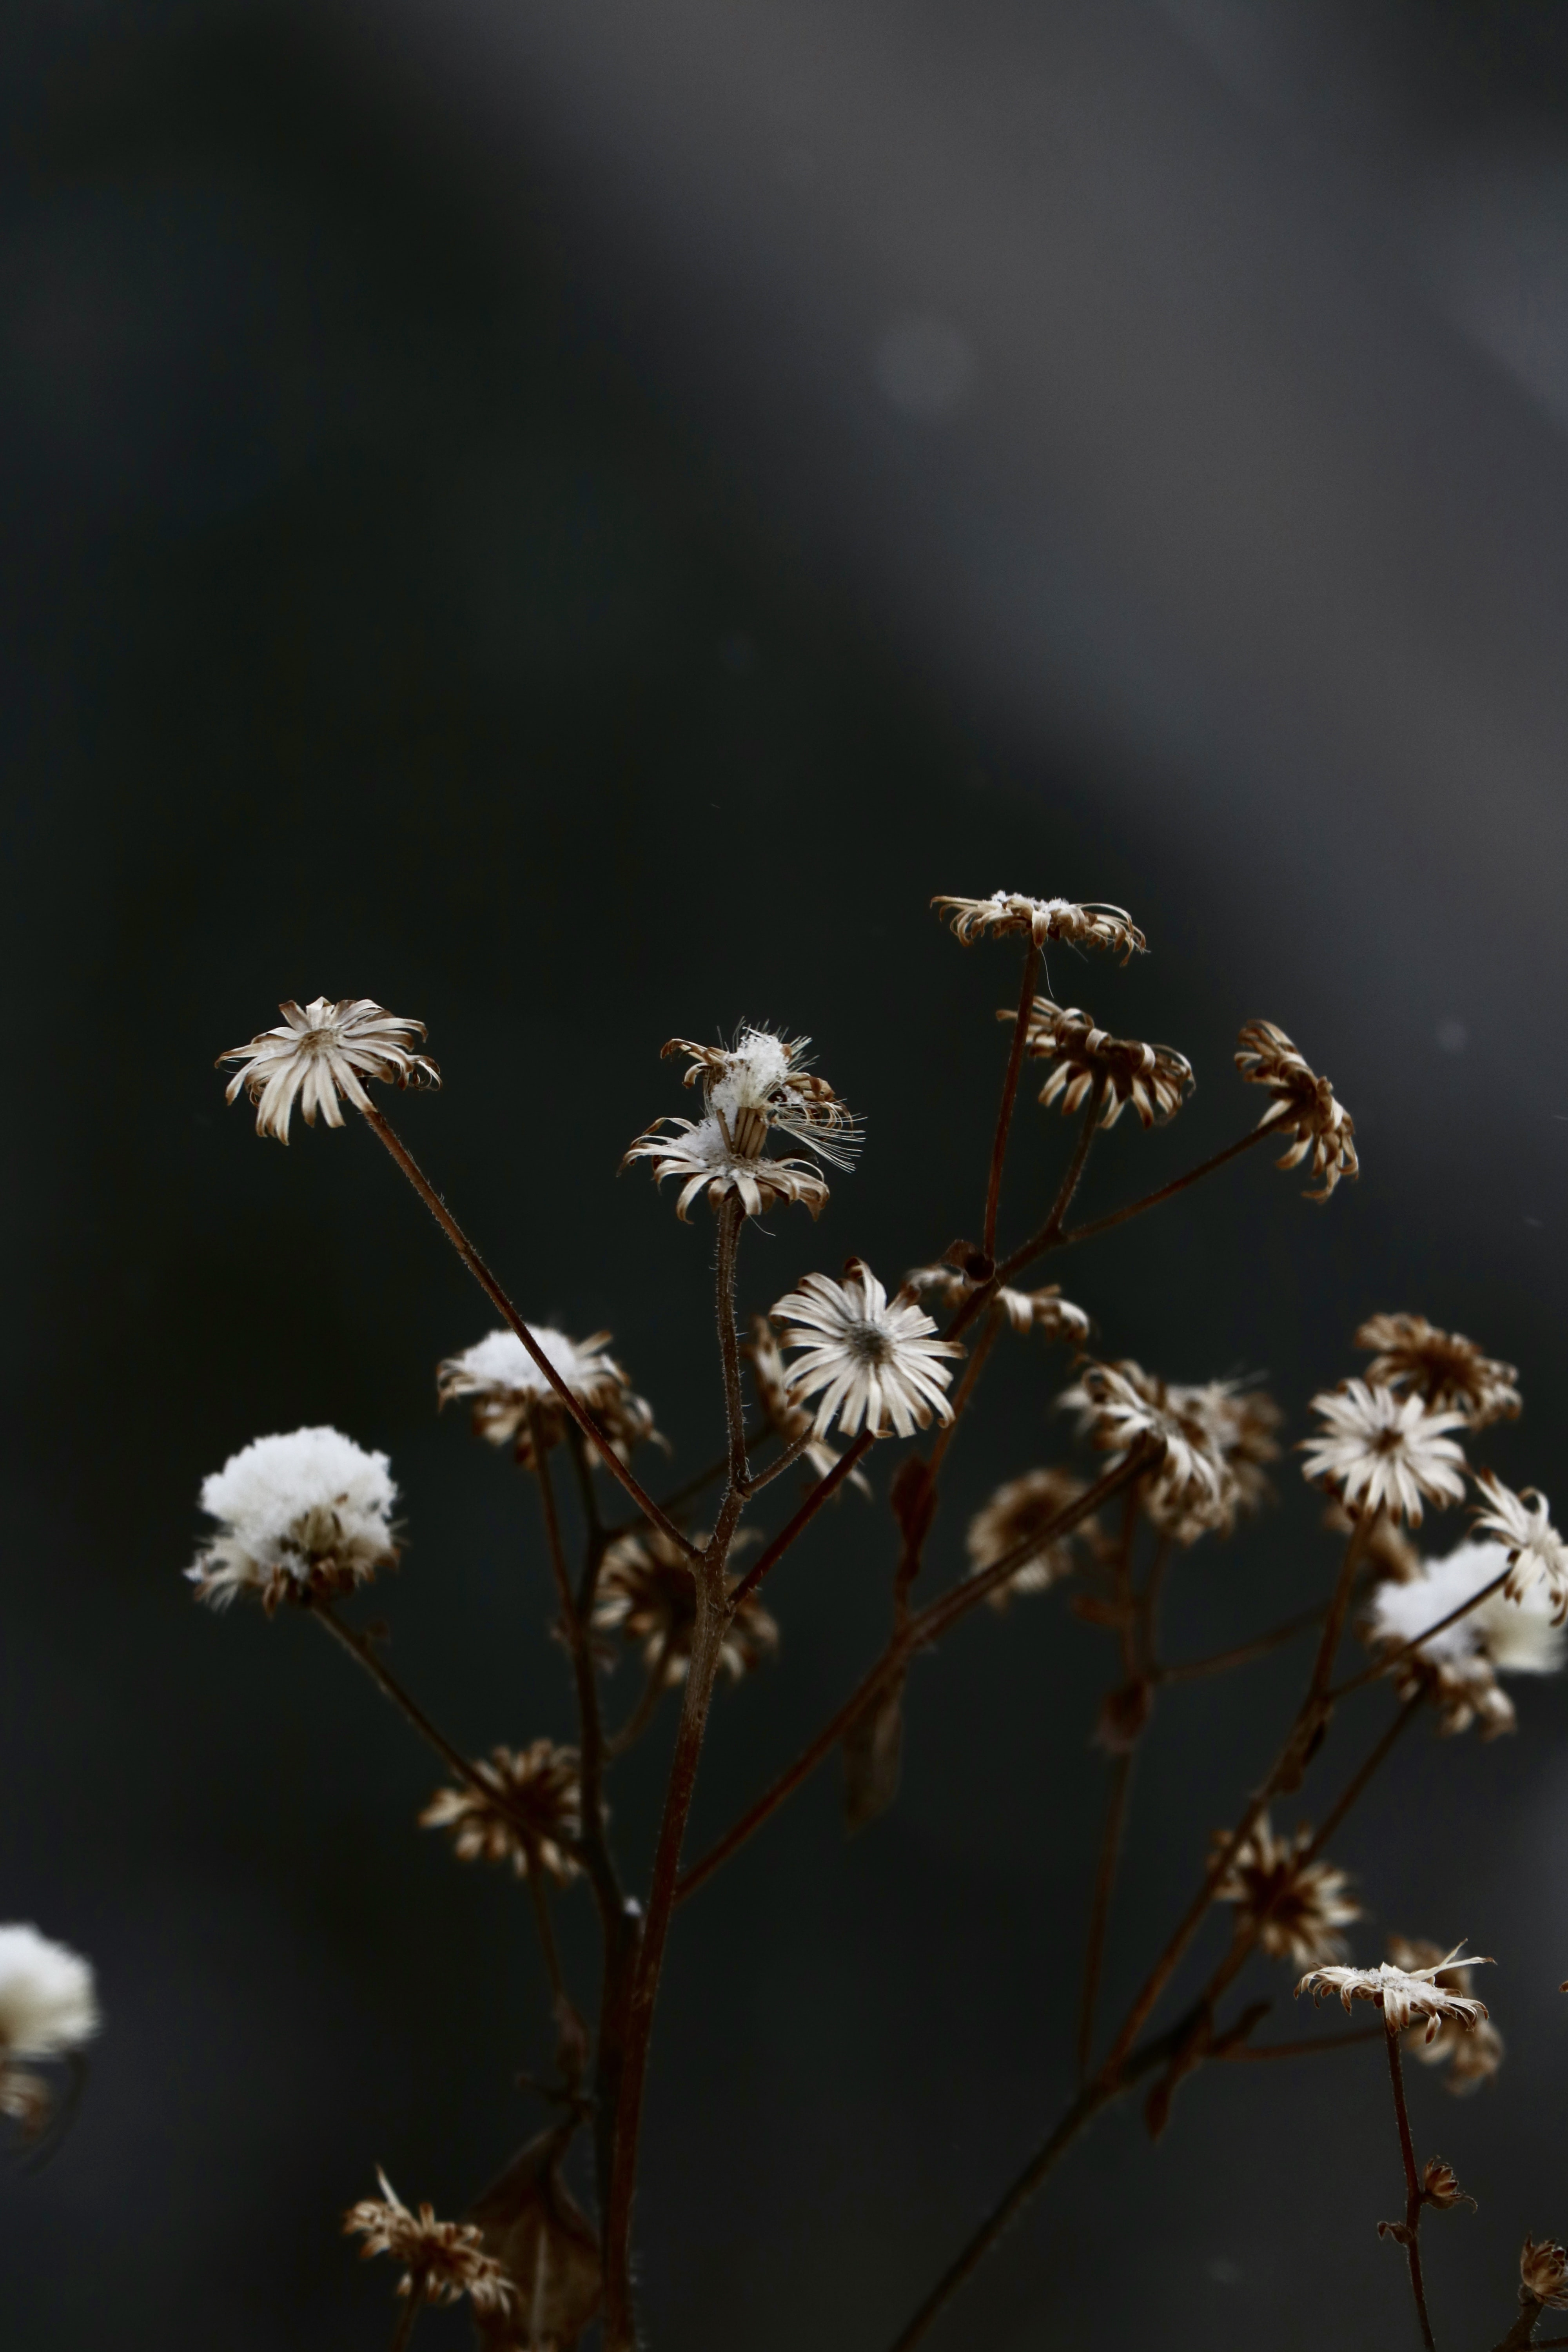 selective focus photo of common daisy flowers